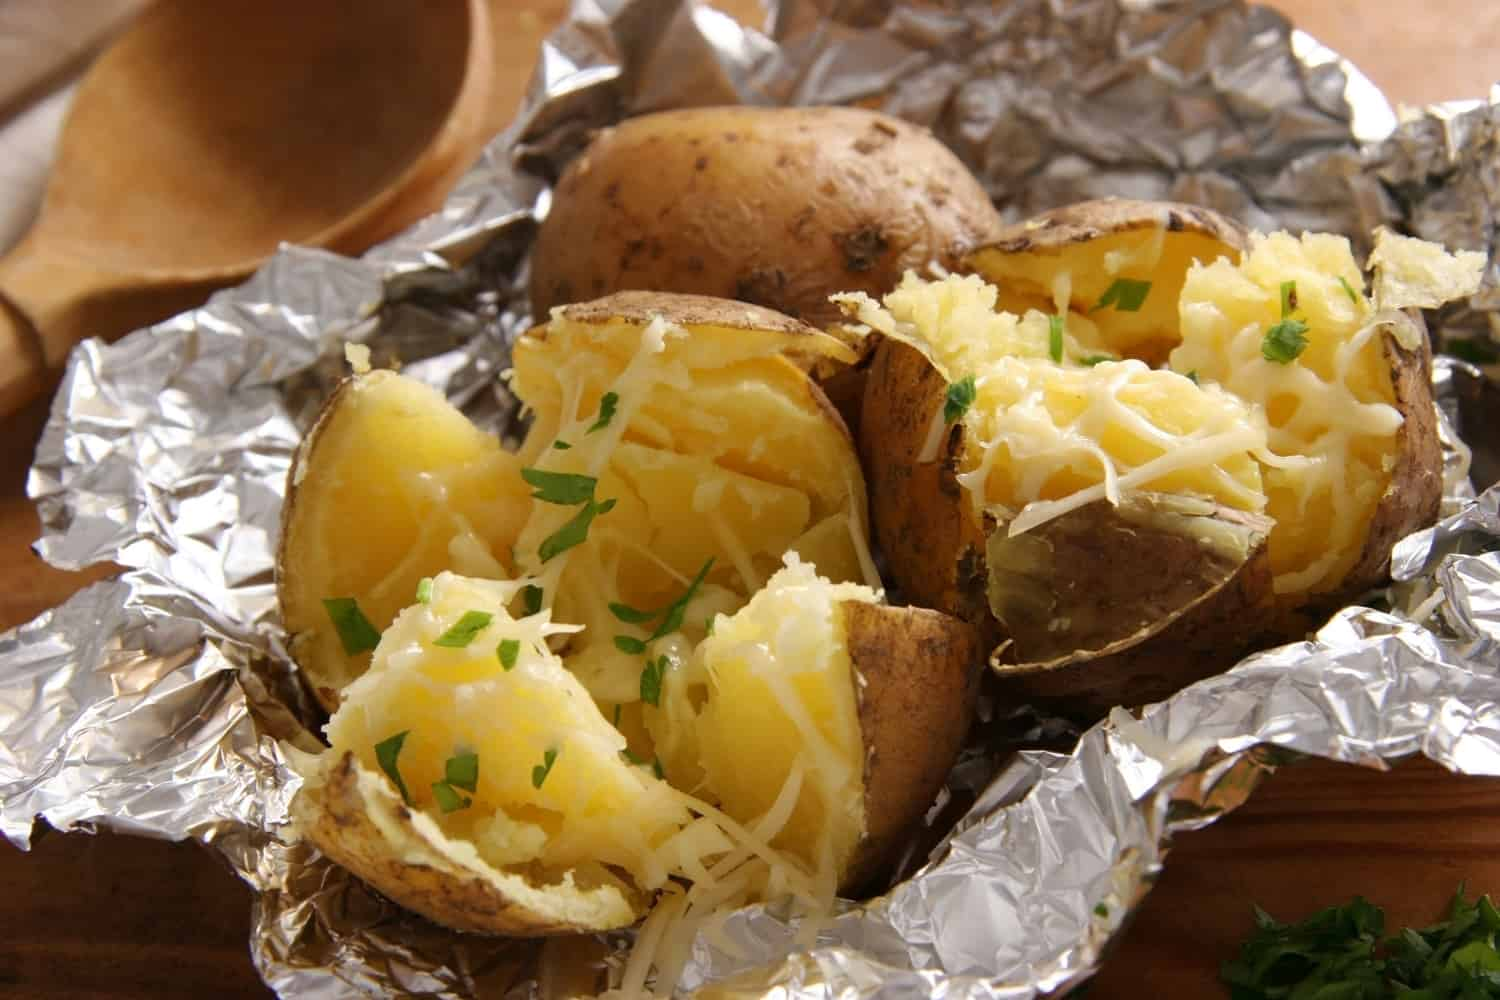 Baked potatoes with butter and cheese.